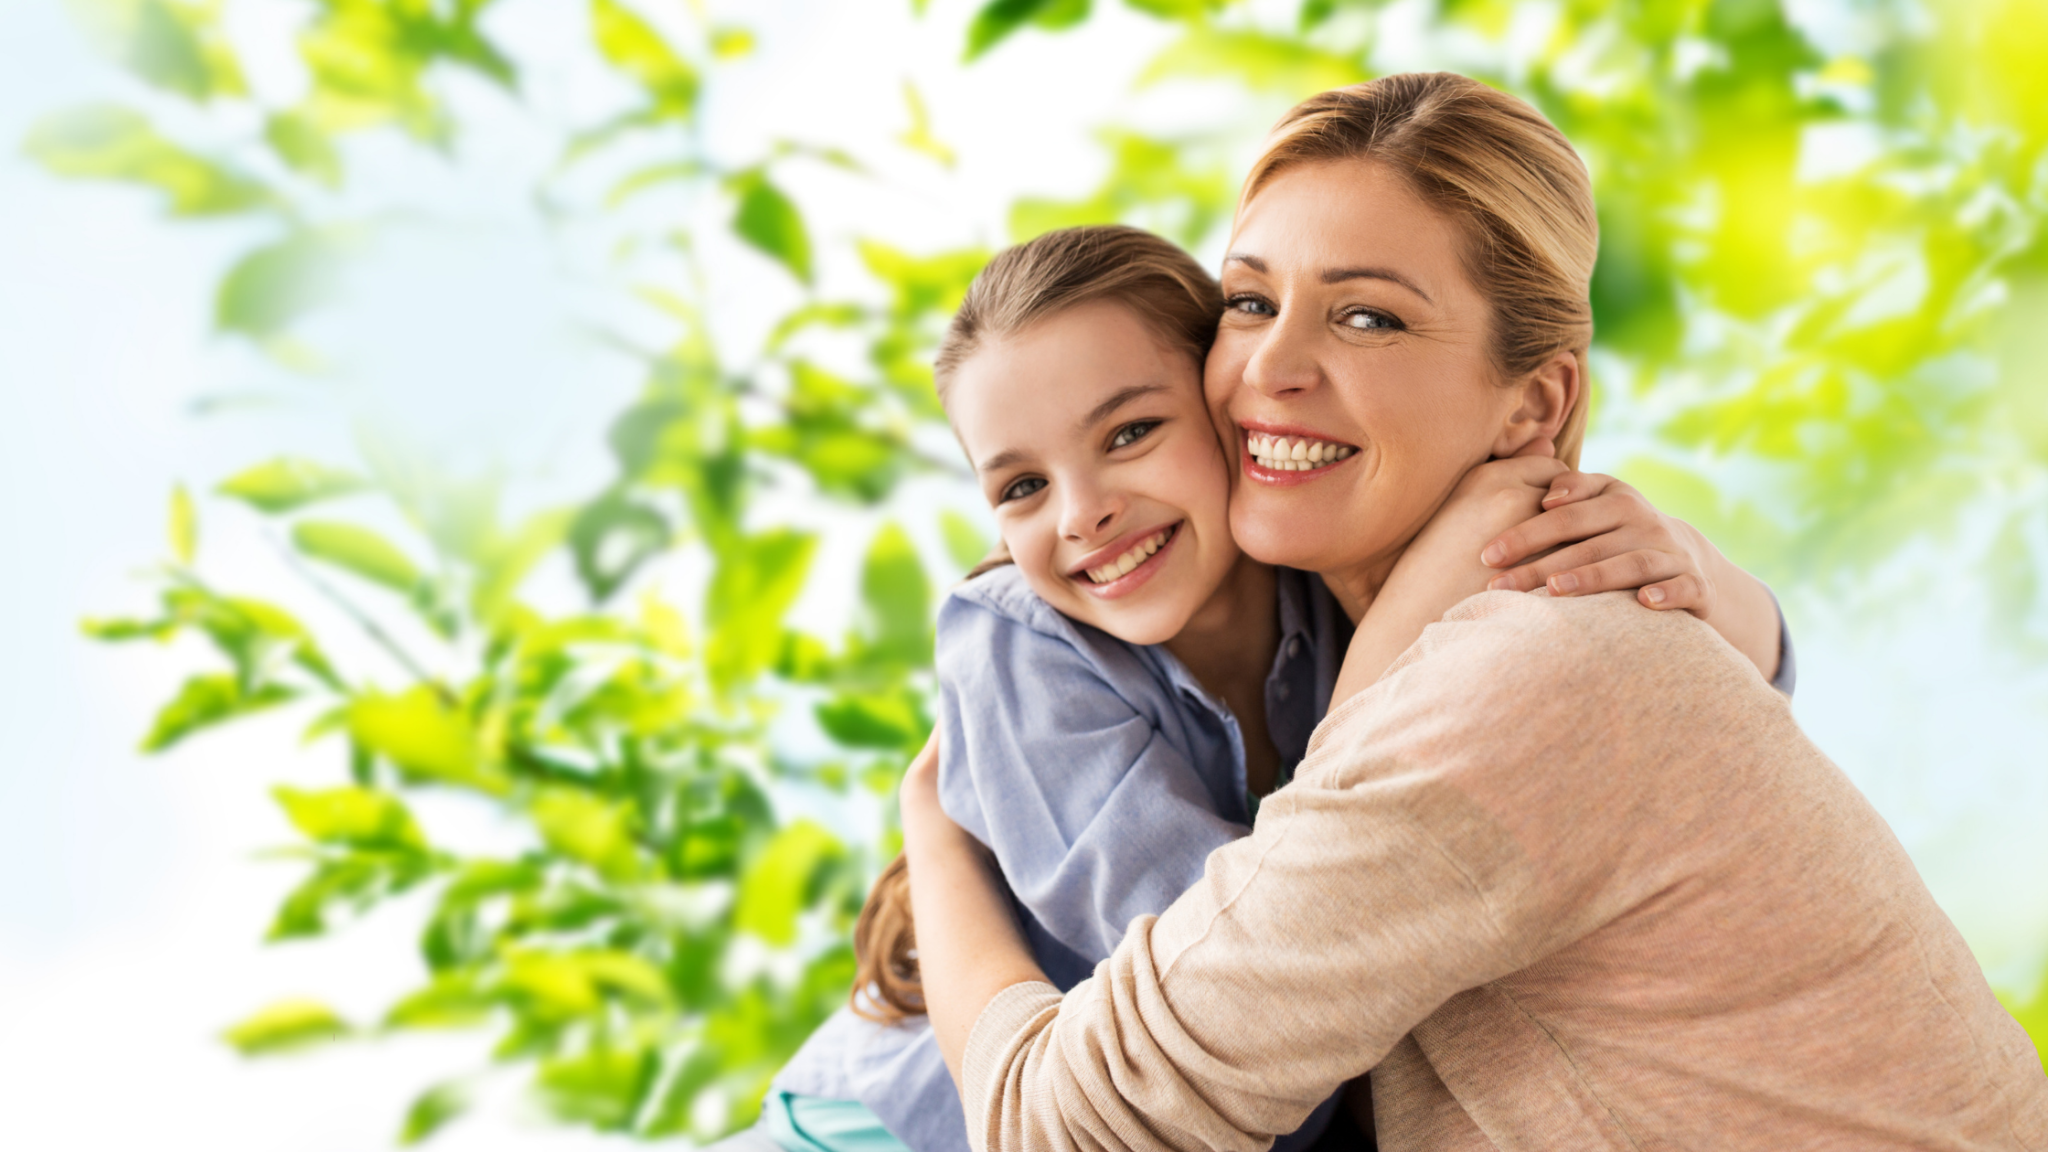 Improvements from ADHD symptoms in just a month - a mother's testimonial